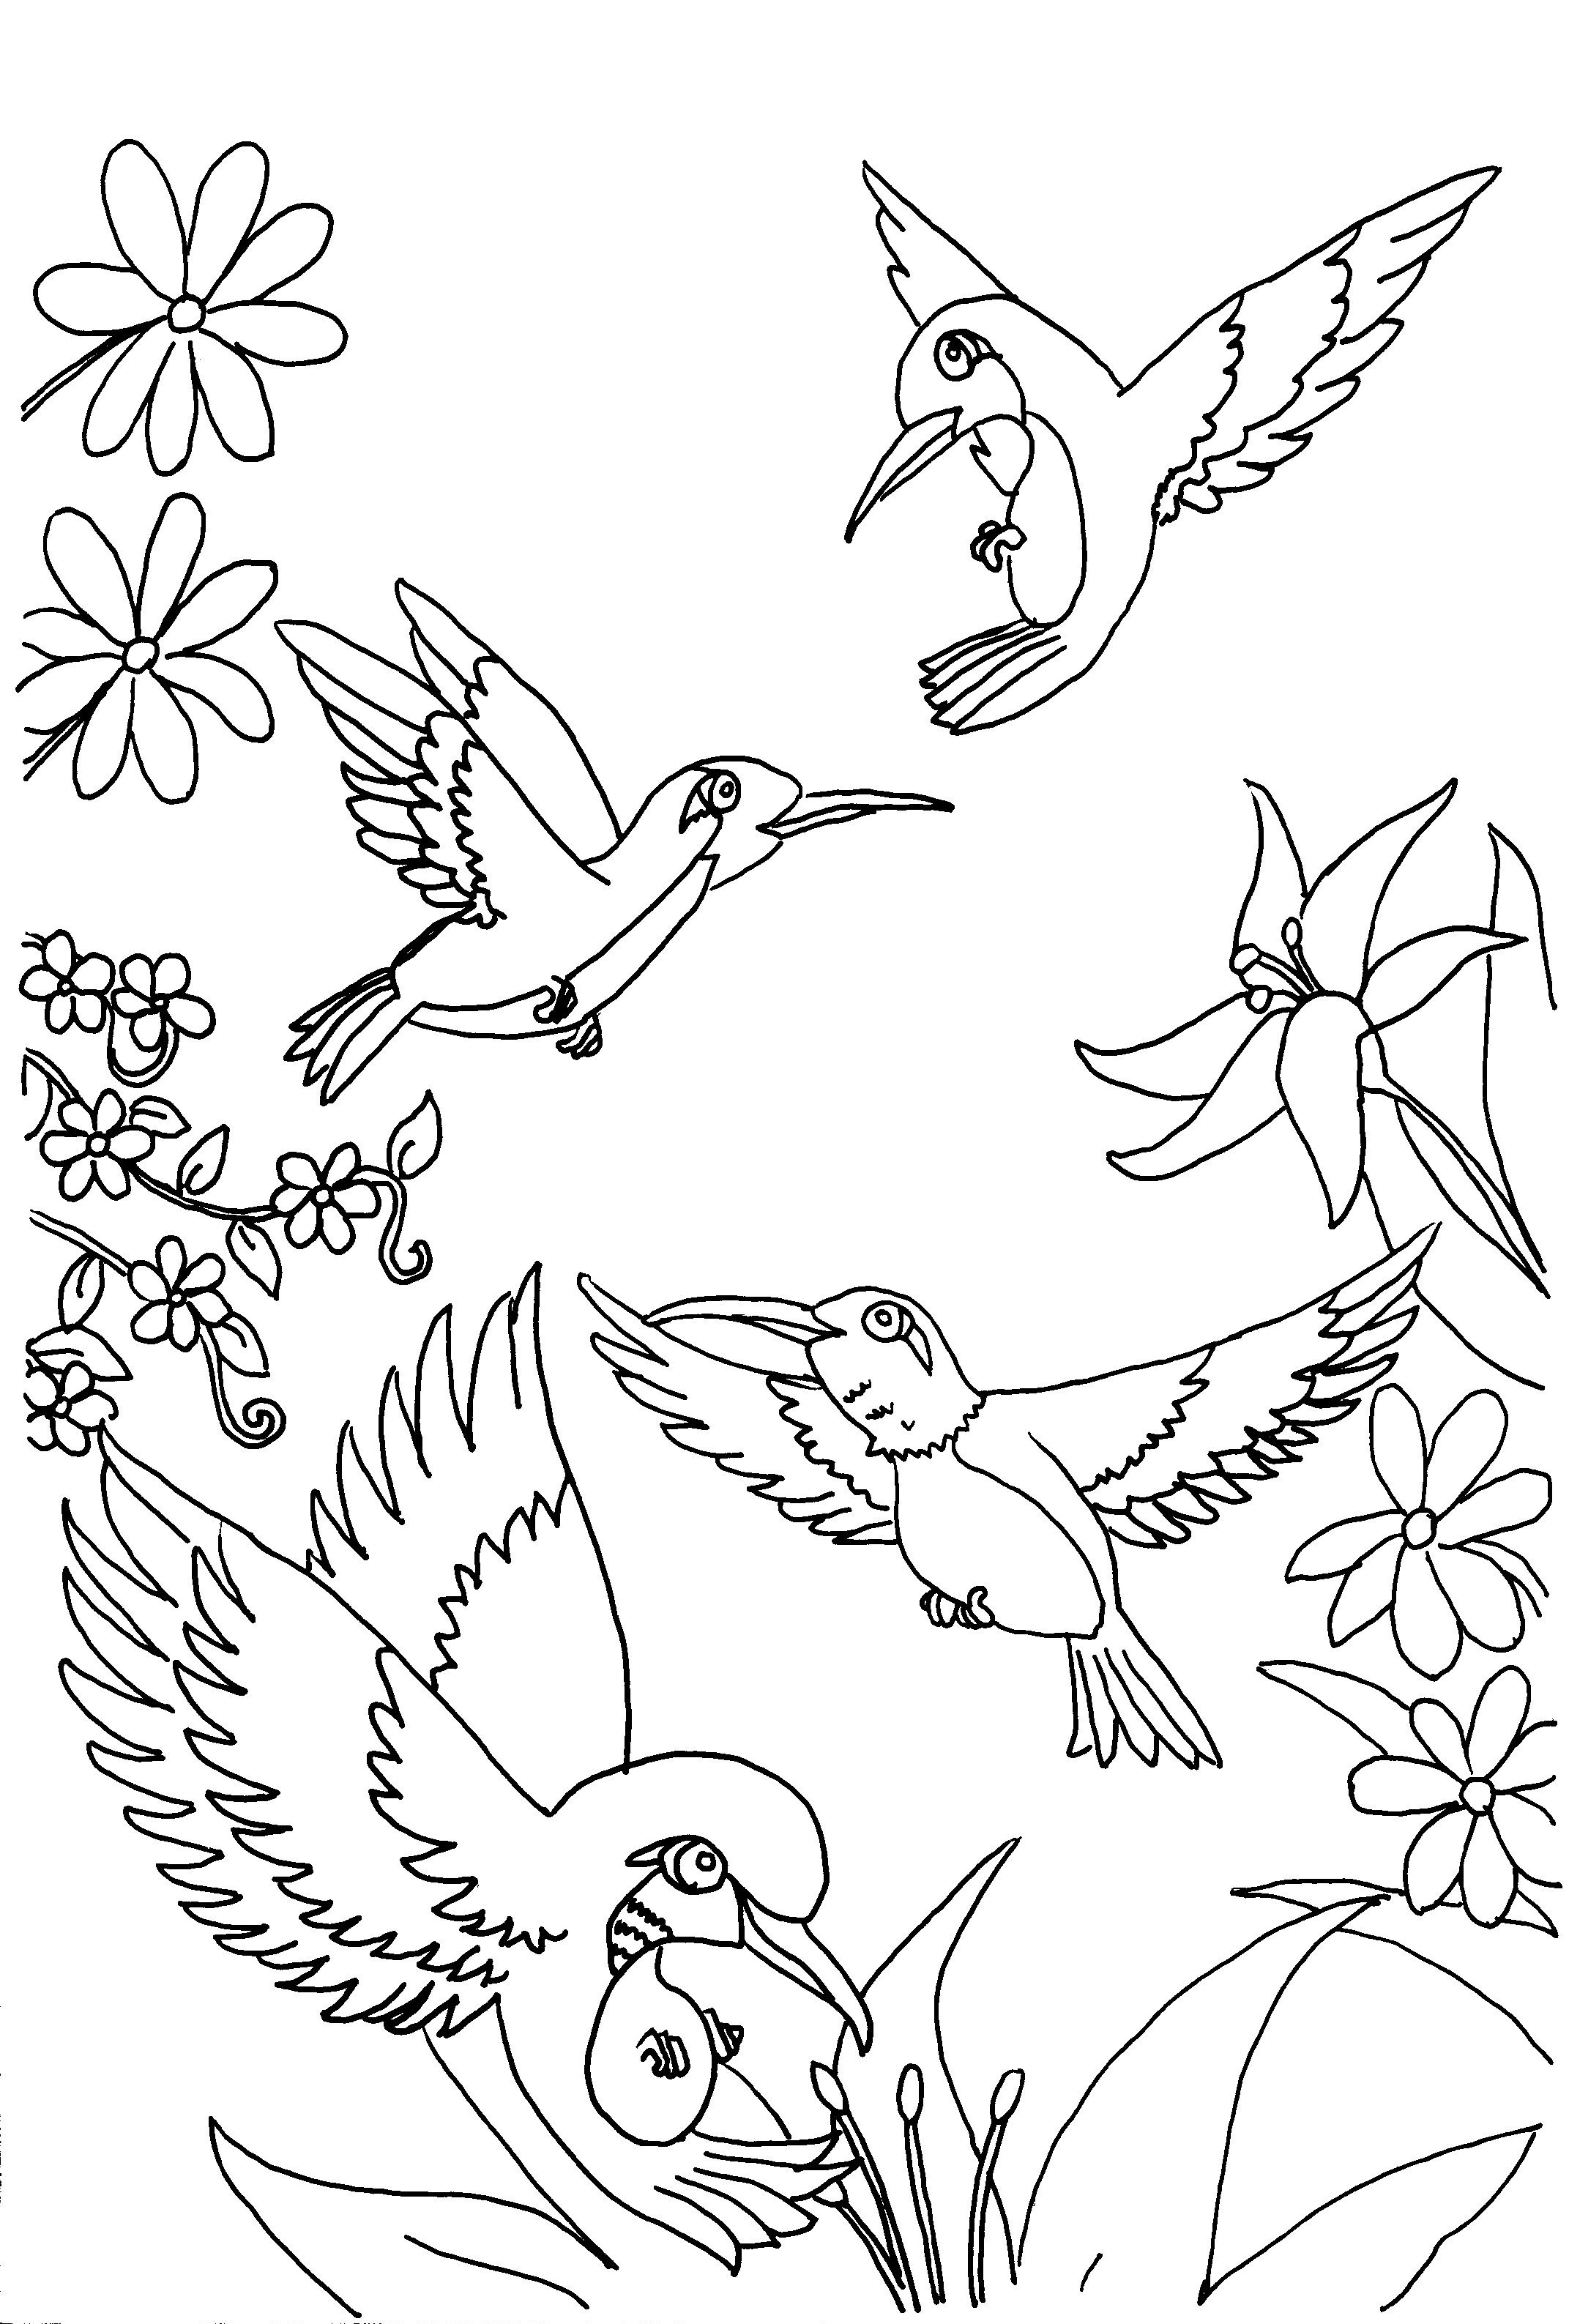 bird colouring pictures top 10 hummingbird coloring pages for your toddler colouring bird pictures